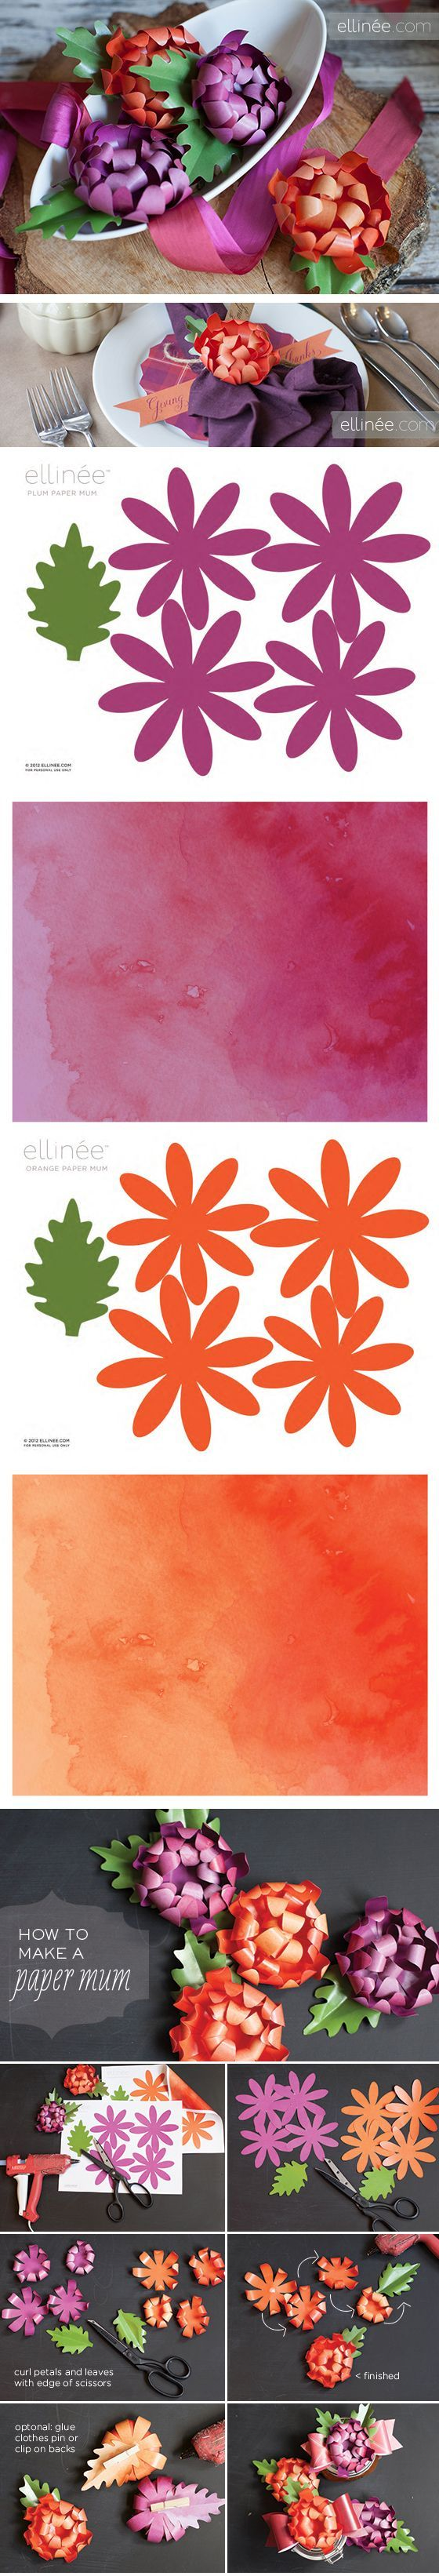 THESE would be a GREAT GIFT ADORNMENT! Paper mum tutorial (with free templates and watercolour papers) from Ellinée http://www.ellinee.com/blog/paper-mum-printables-tutorial/   :):